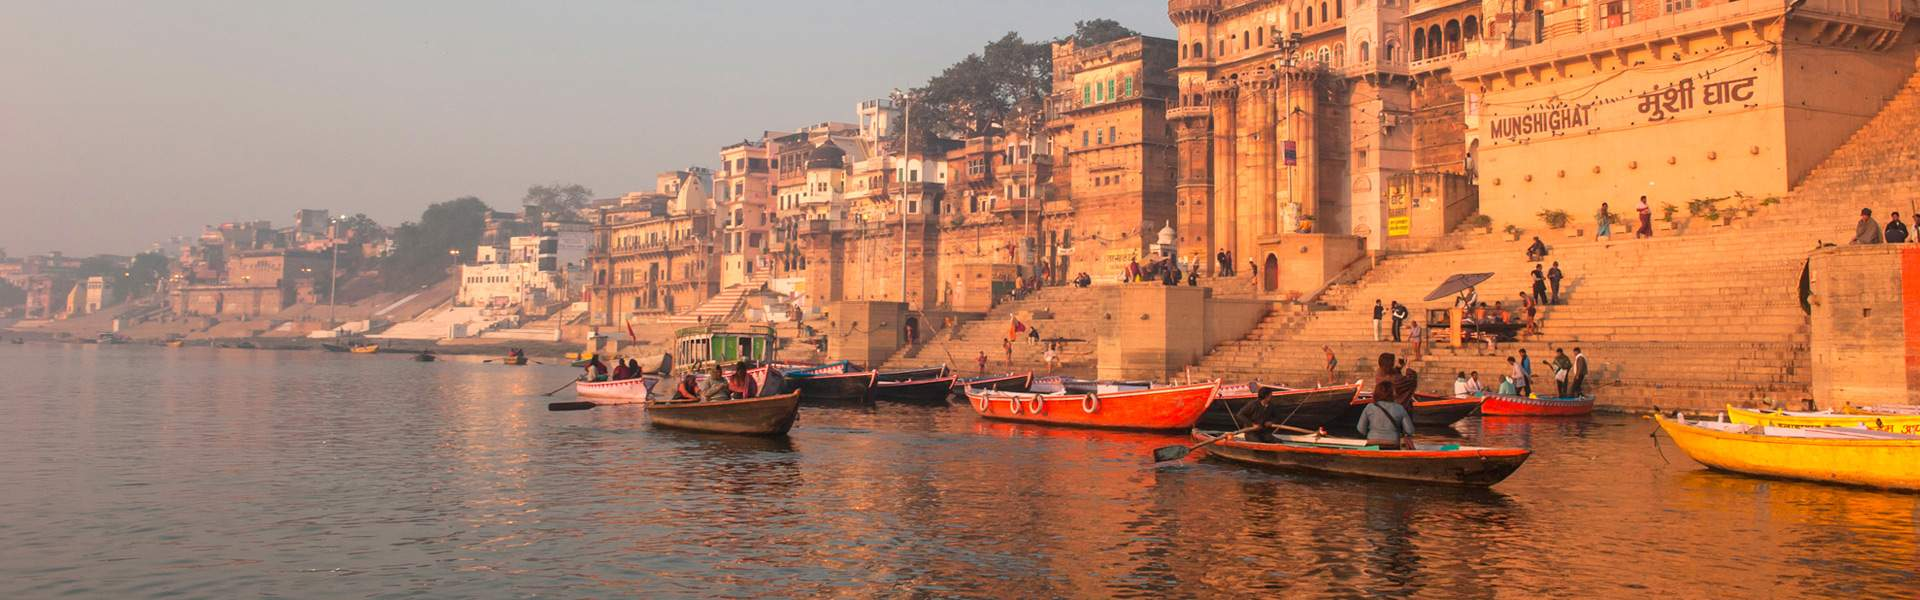 Free Return Upgrade to Premium Economy Ganges India